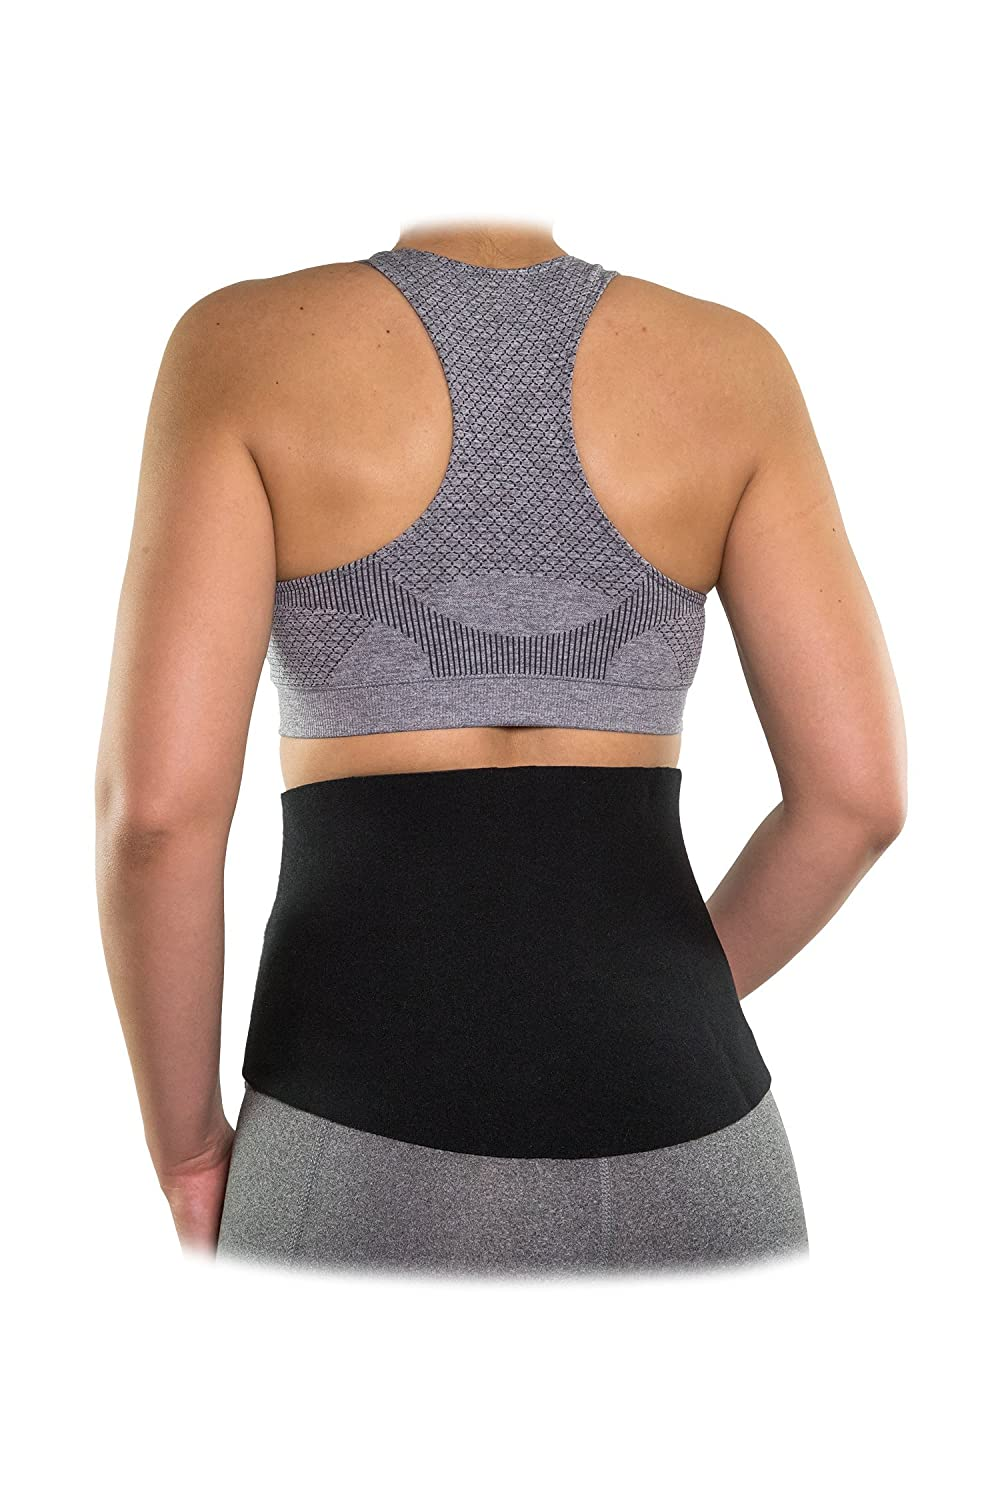 2f37b88133a Amazon.com   McDavid Waist Trimmer Ab belt- Weight Loss- Abdominal Muscle   Back  Supporter   Sports   Outdoors